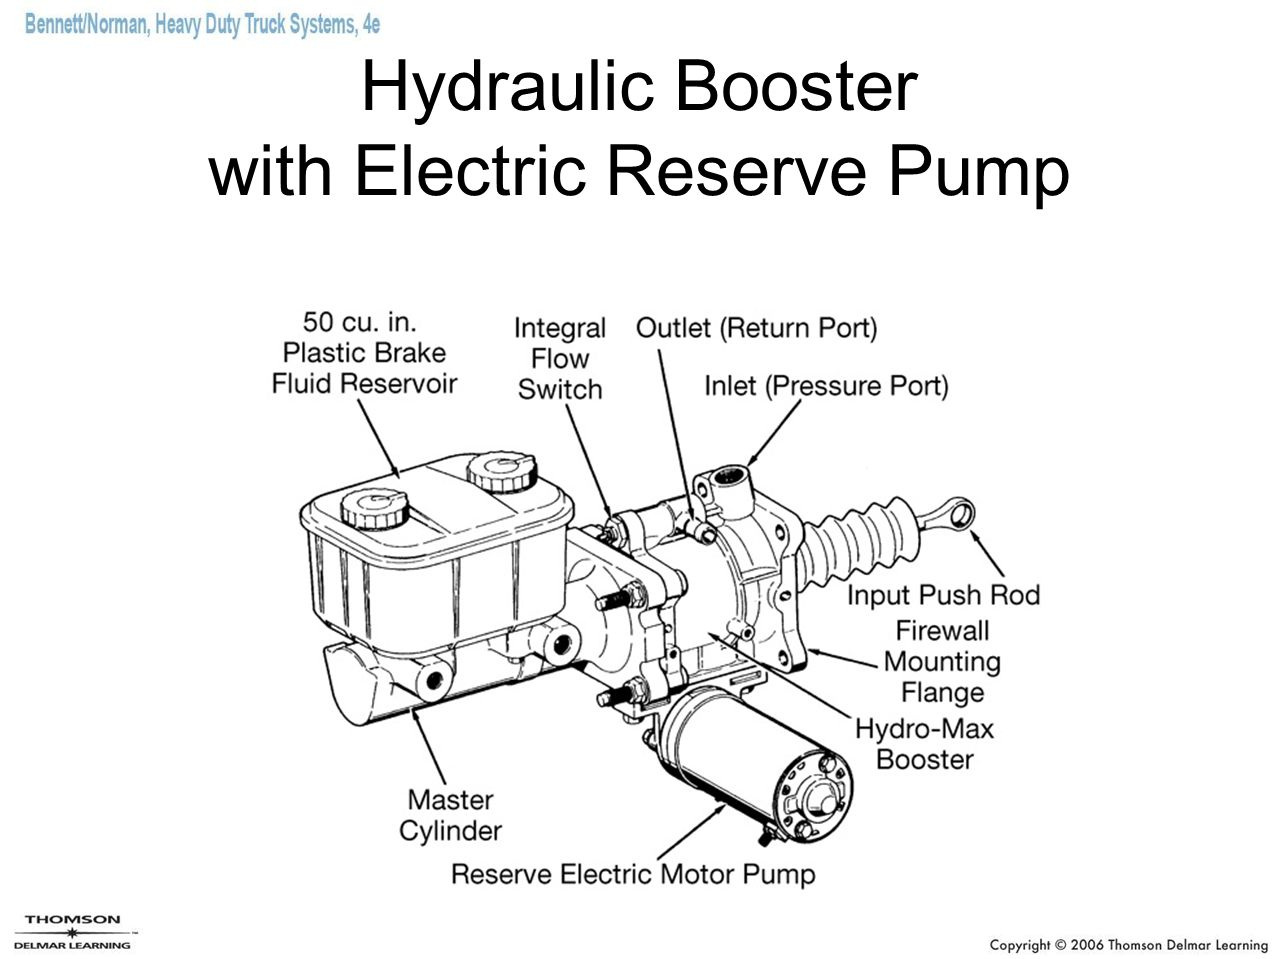 Hydraulic Booster with Electric Reserve Pump